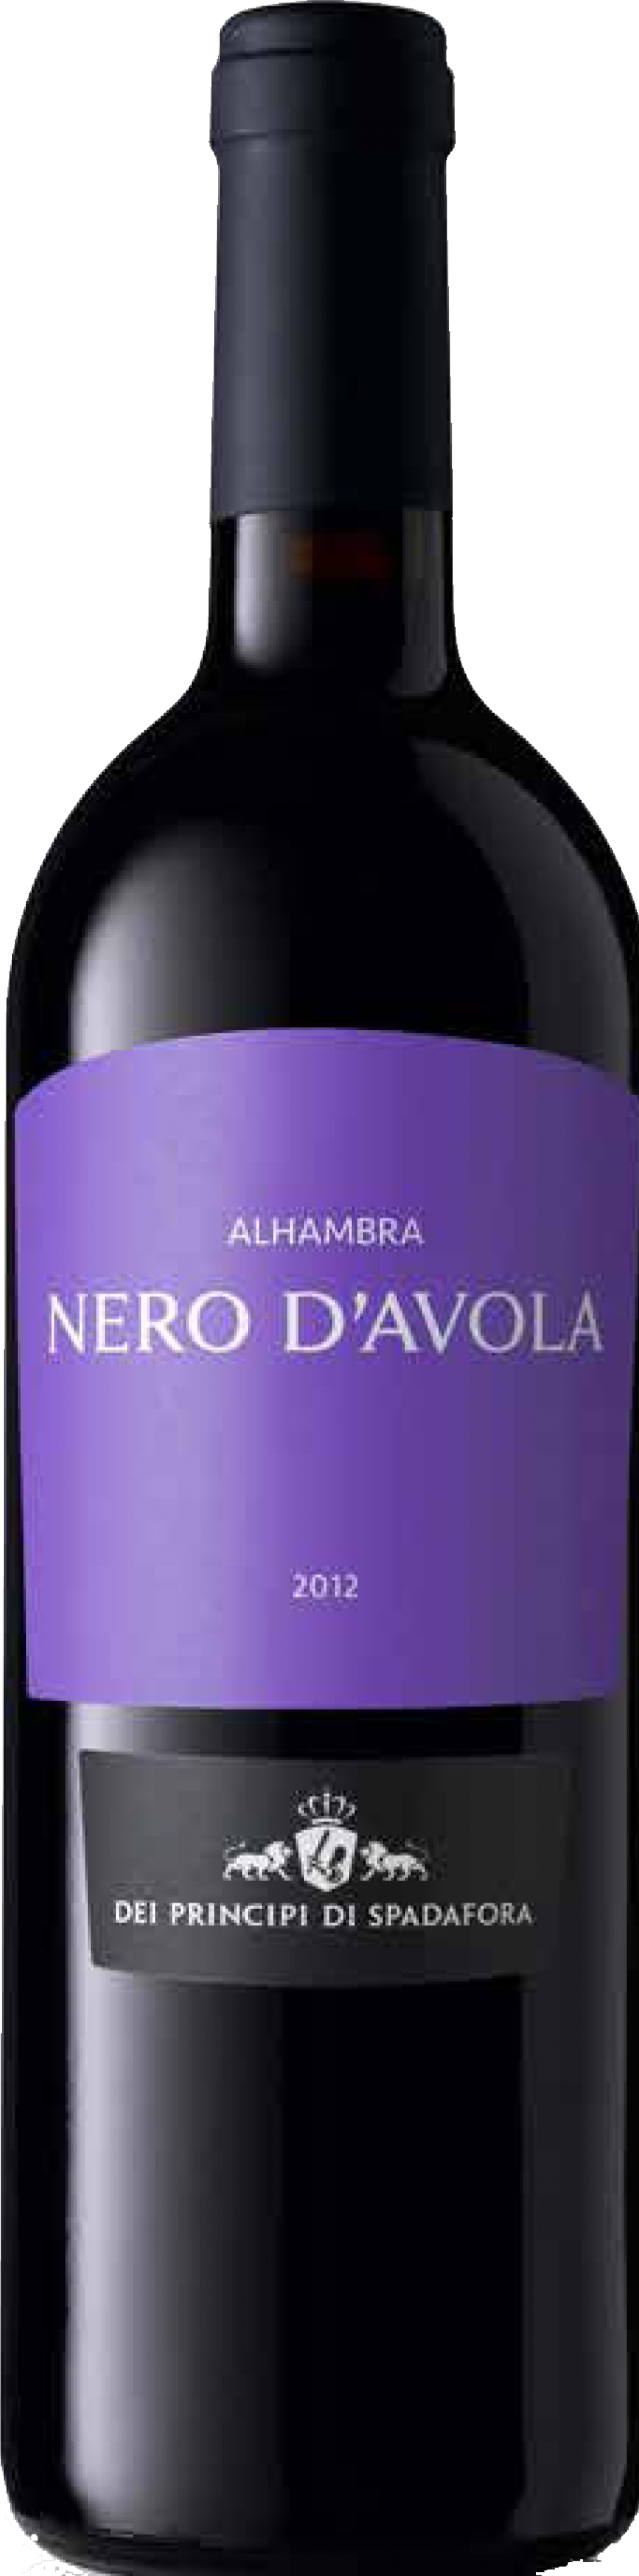 files/images/wines/Italy/spadafora/alhambra-nero-davola-2.png